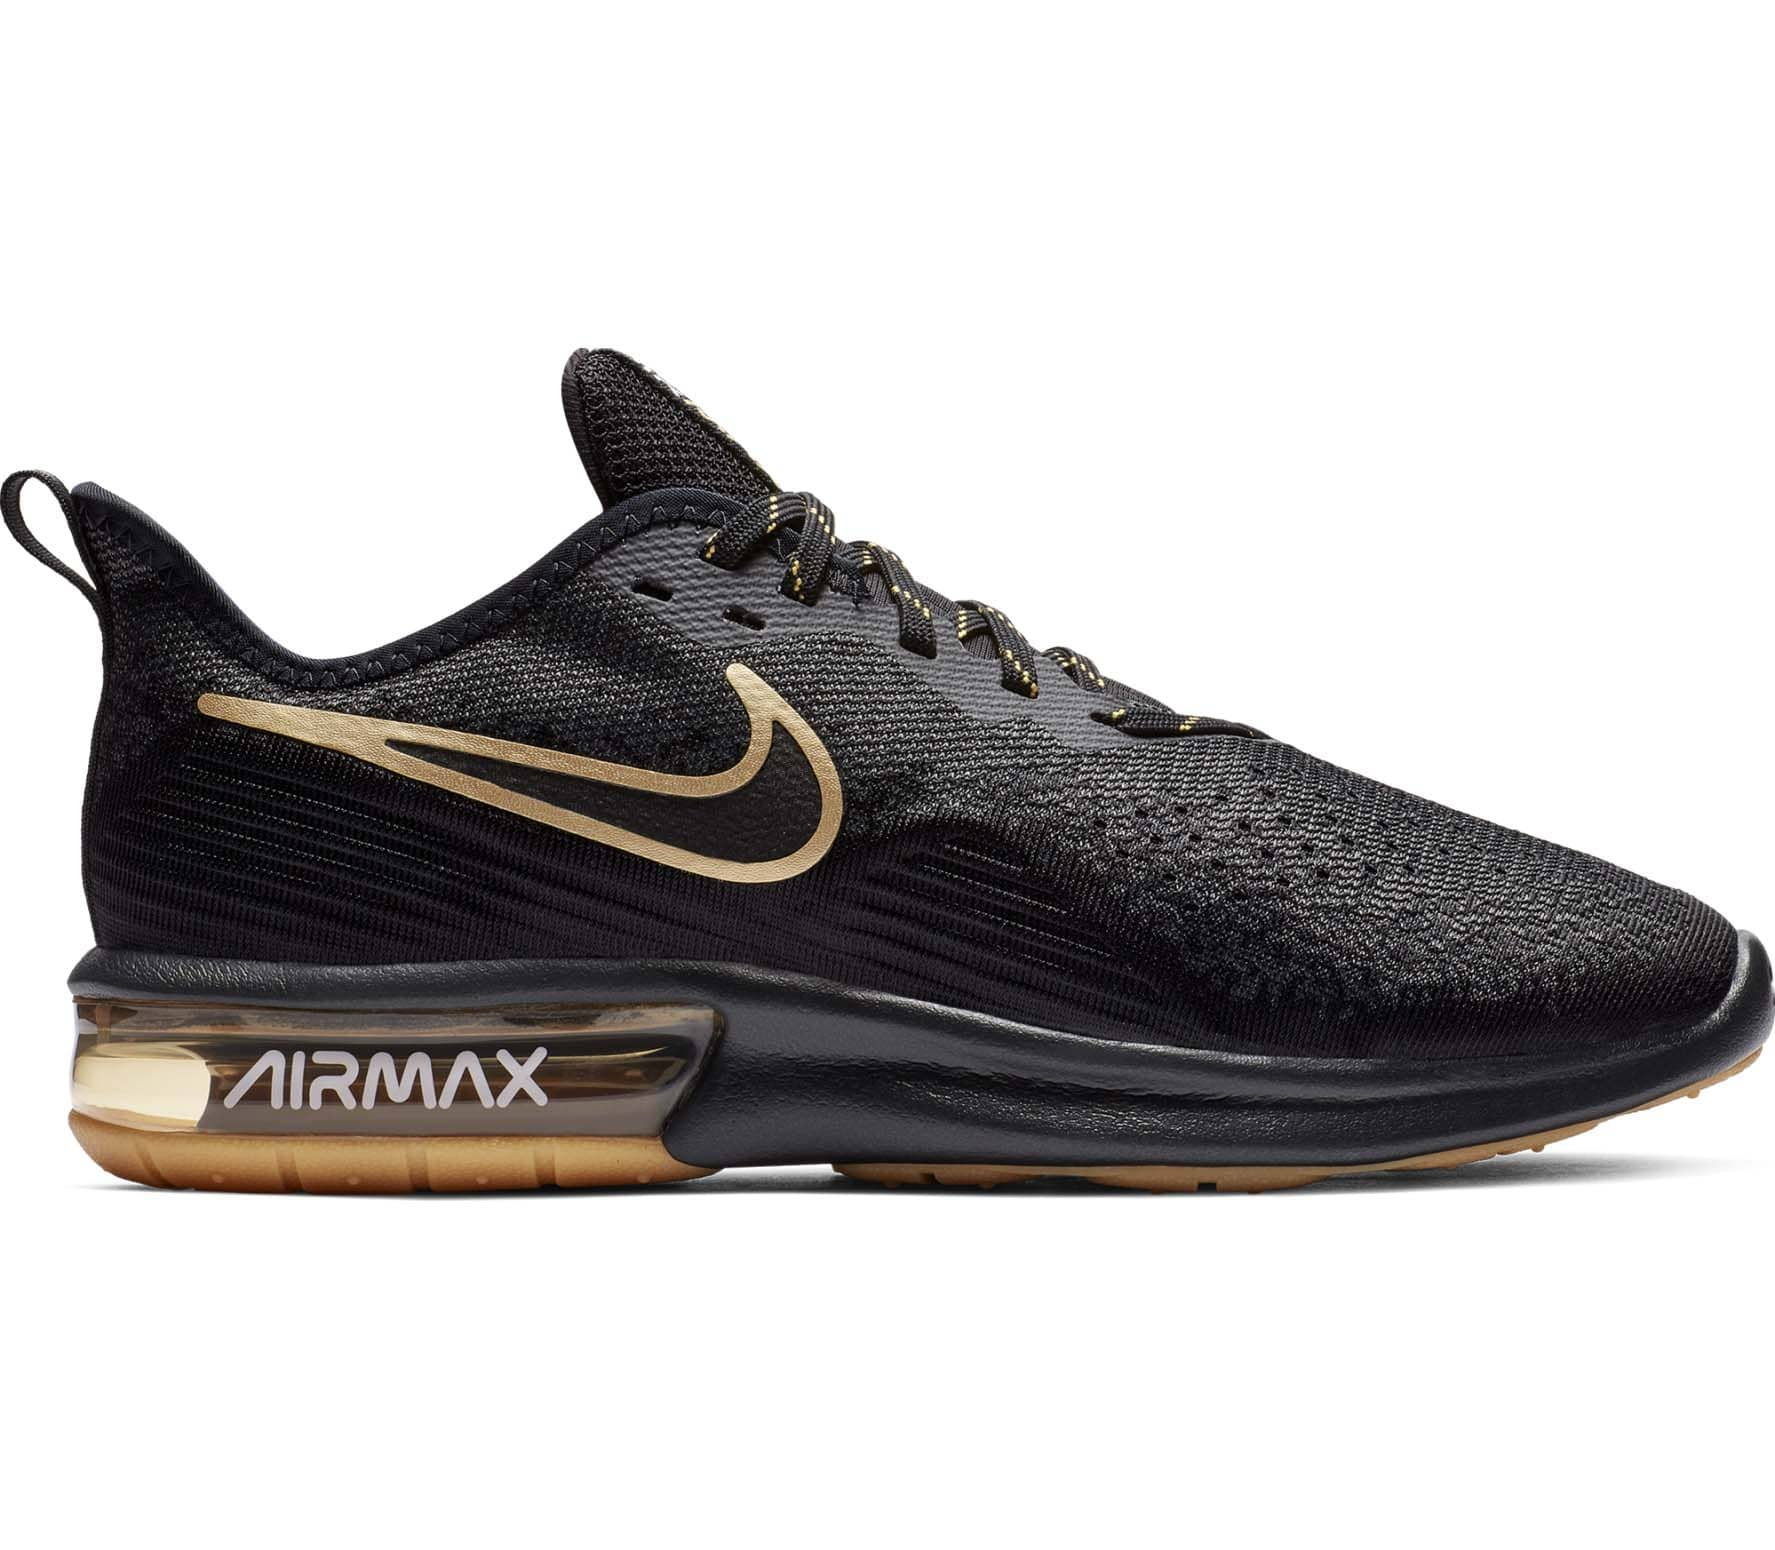 huge discount 7531a 630dd Air Max Sequent 4 Herren Laufschuh (schwarz) - EU 42,5 - US